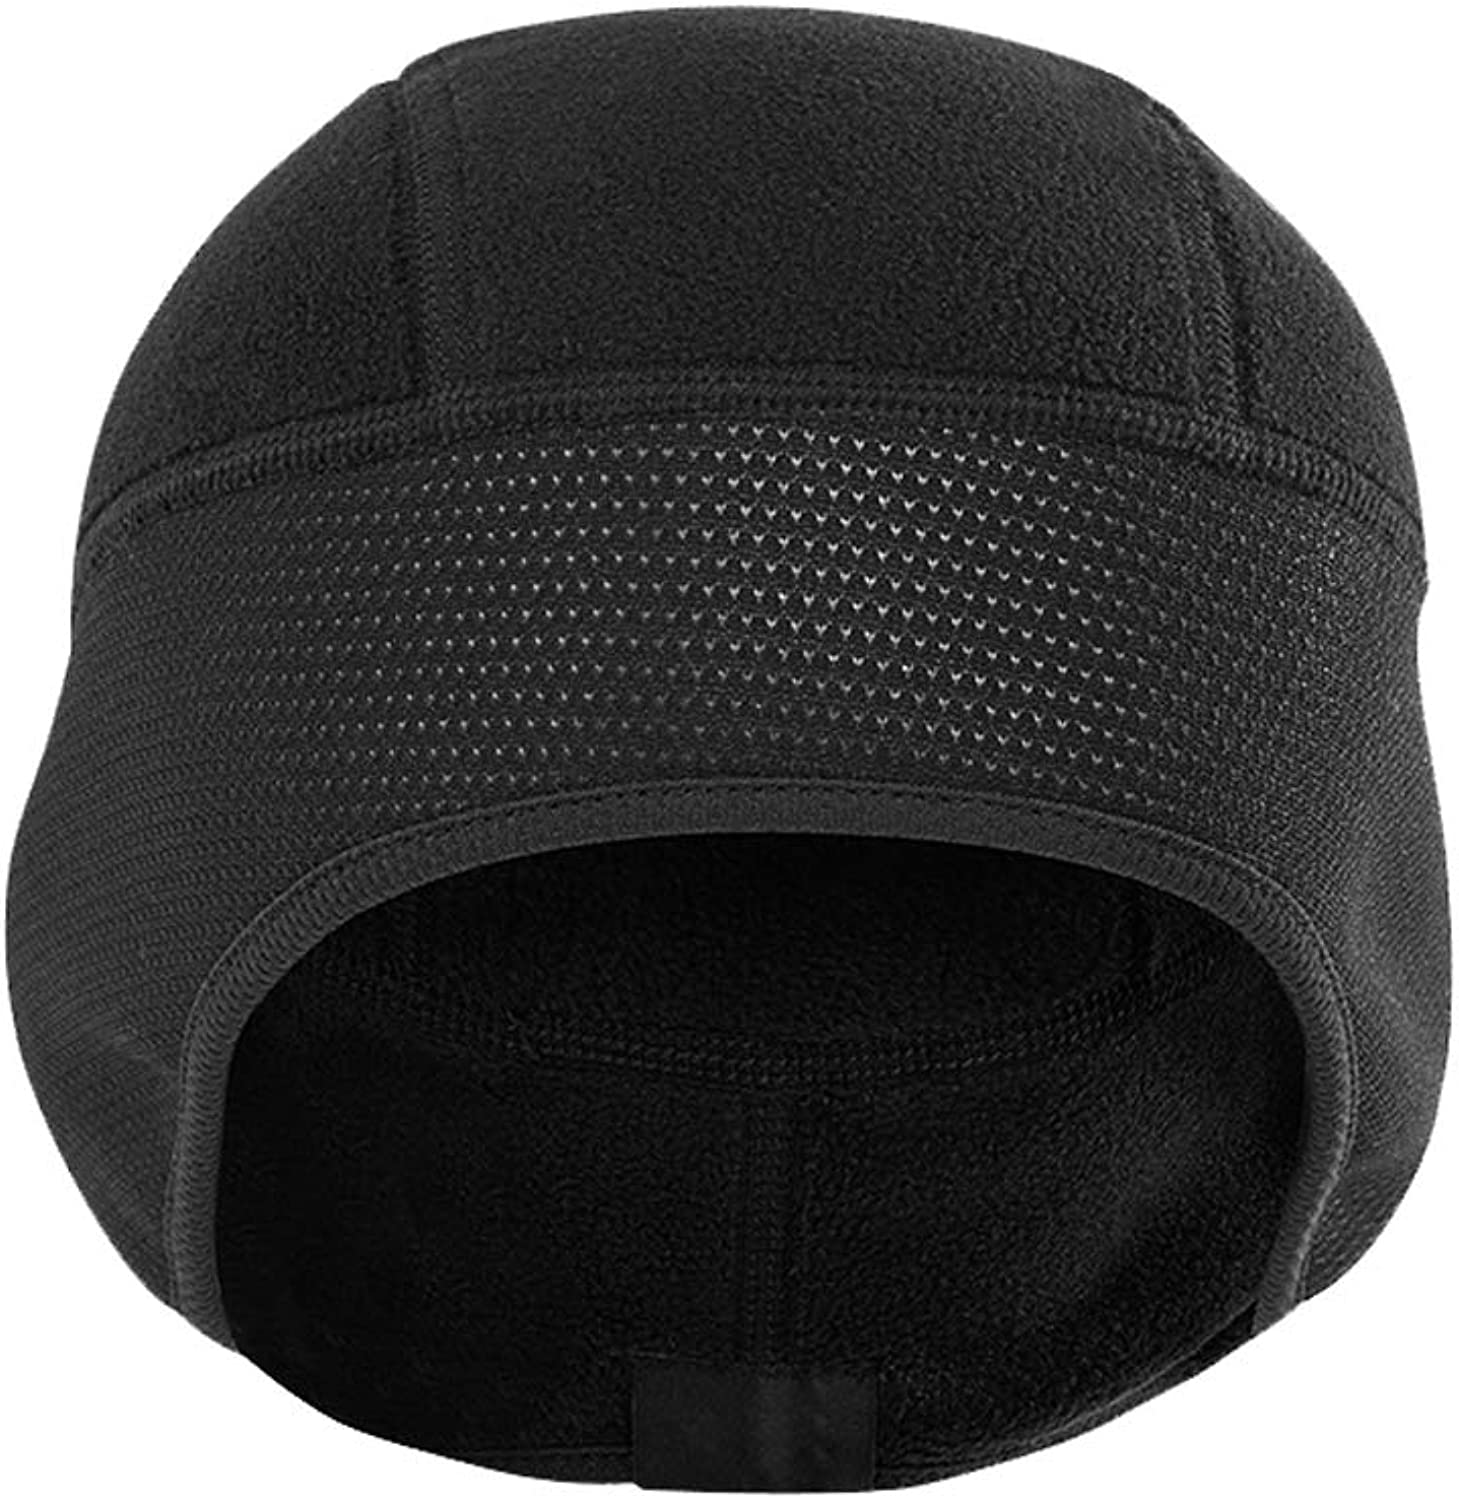 Winter Simple Fashion Windproof Warm Lock Temperature, Elastic Edging ski Headgear Outdoor Cold Riding Electric Motorcycle Head Cap Hood Male Cap, Comfortable and Stylish Nosterappou